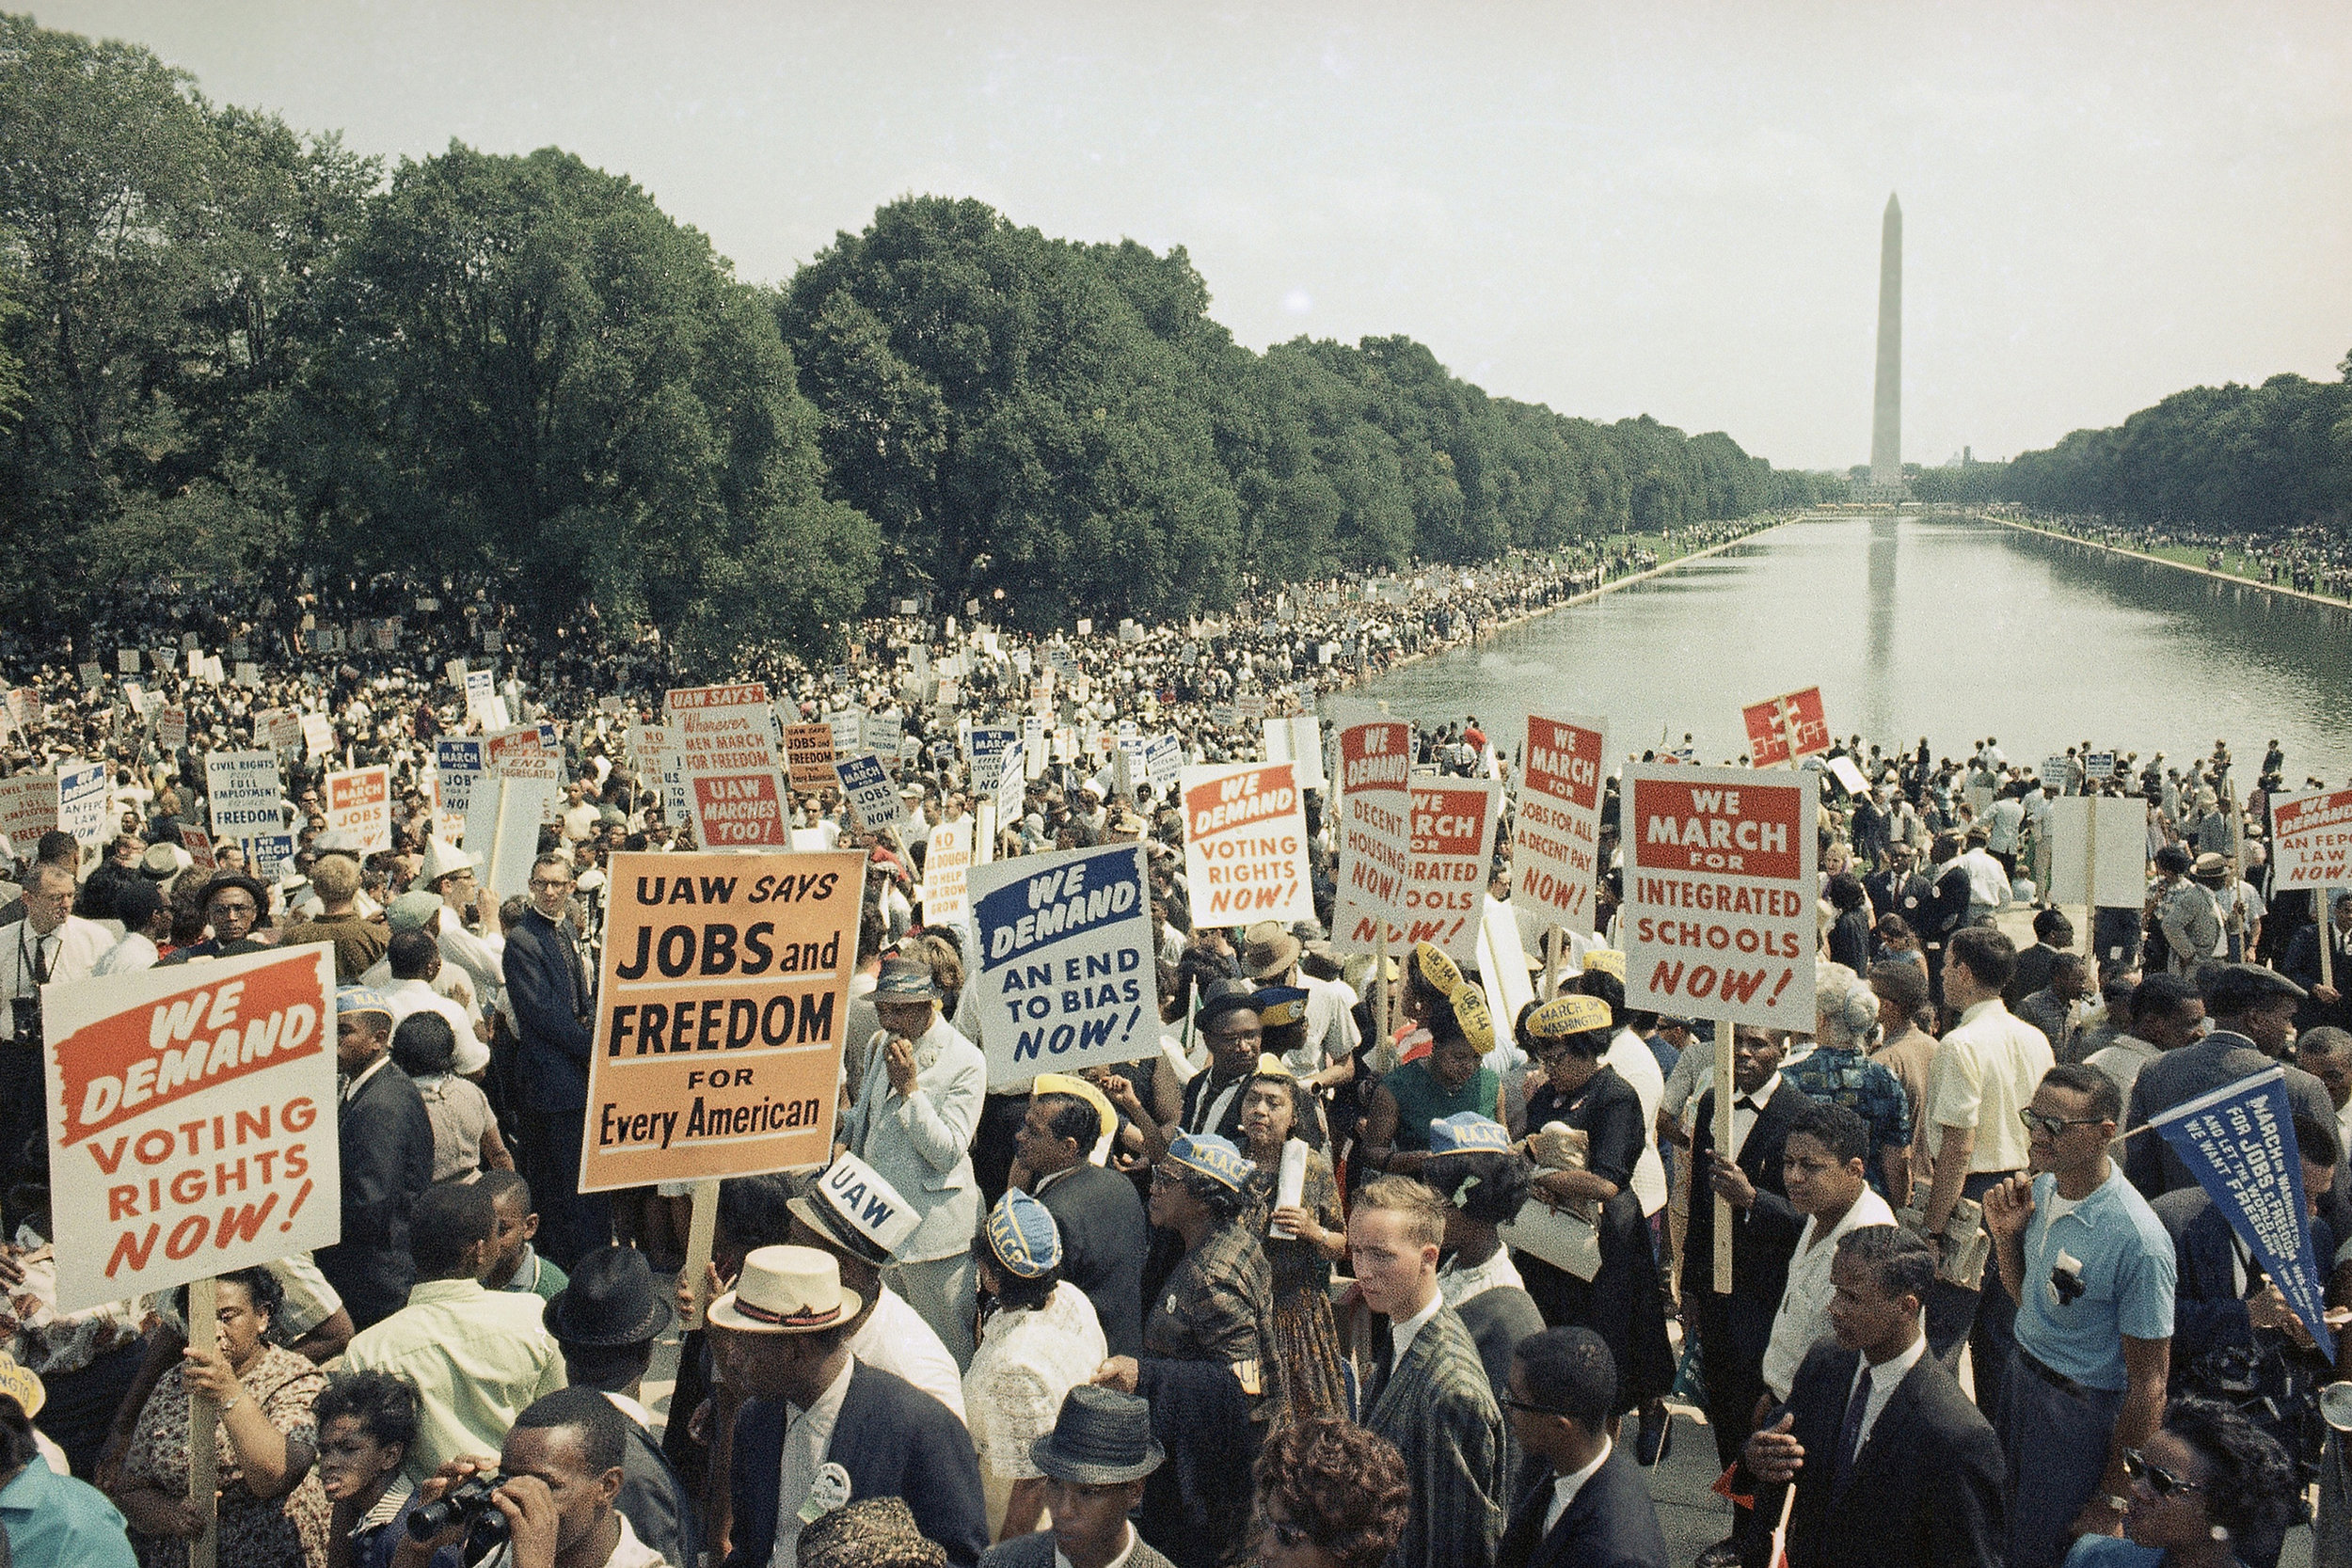 Large crowds gather at the Washington Monument and around the reflecting pool to demonstration for civil rights in Washington, D.C., on August 28, 1963. (AP Photo)